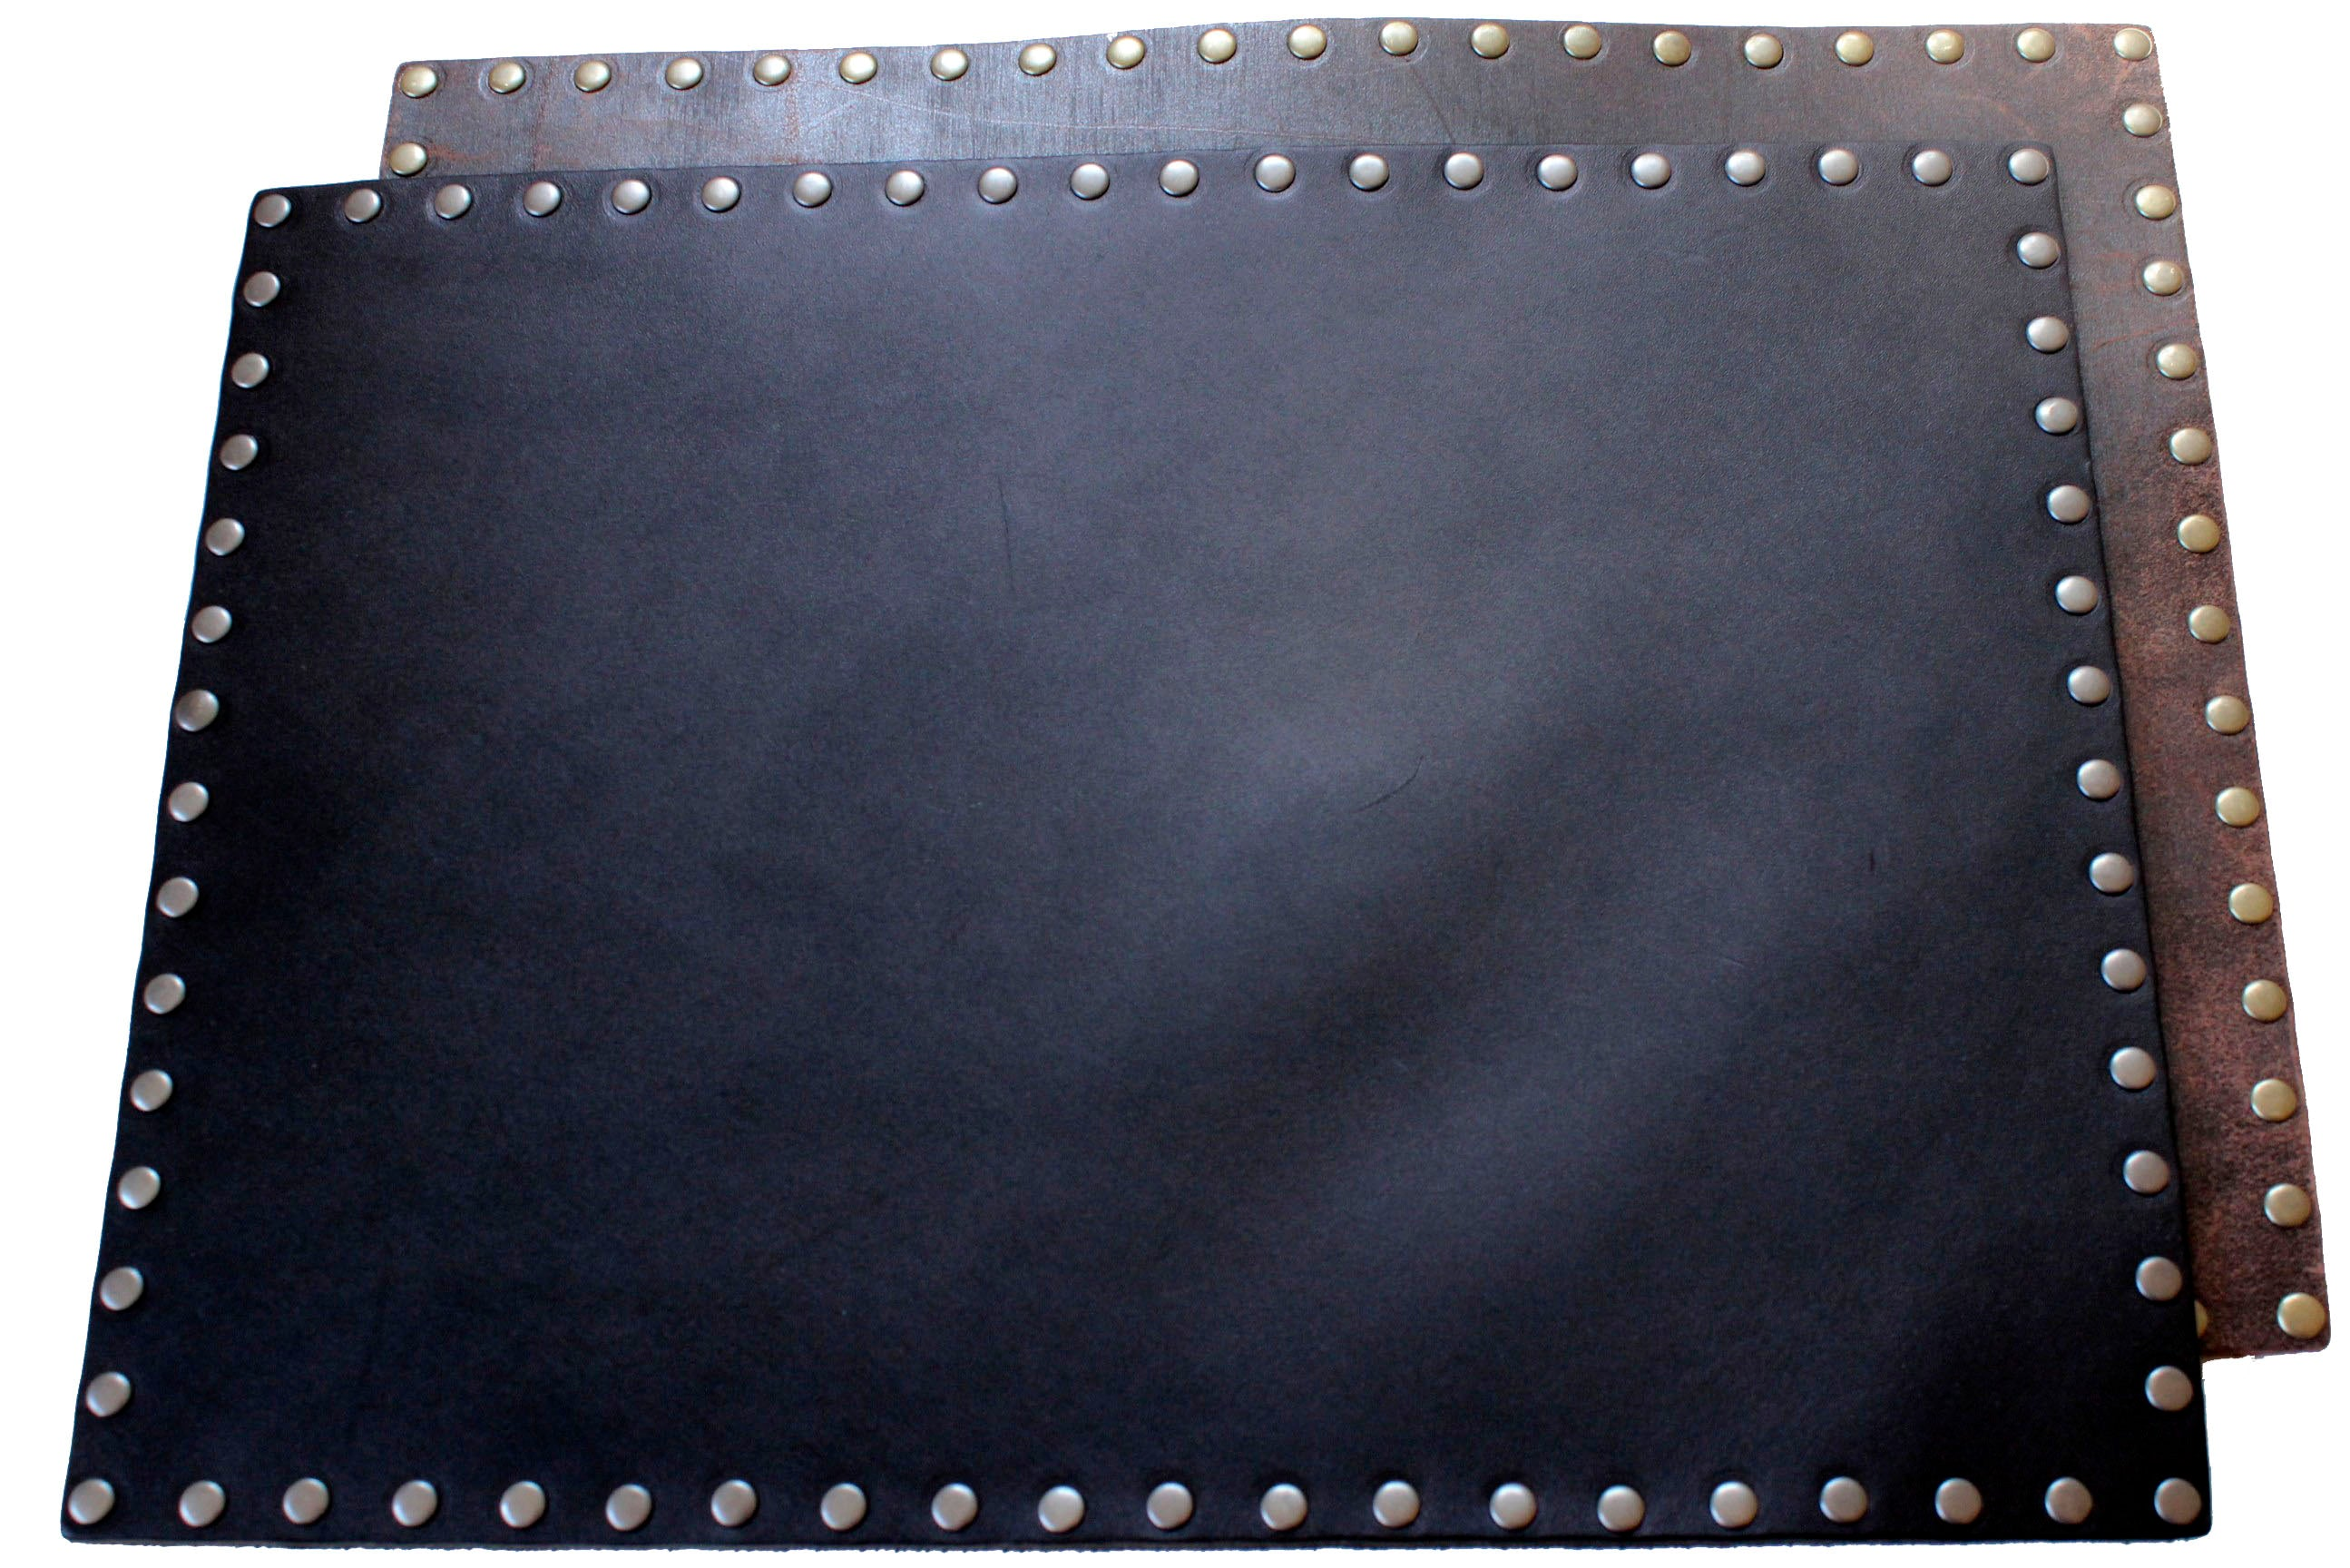 Leather Placemat Black Or Brown The Copperpeace Store